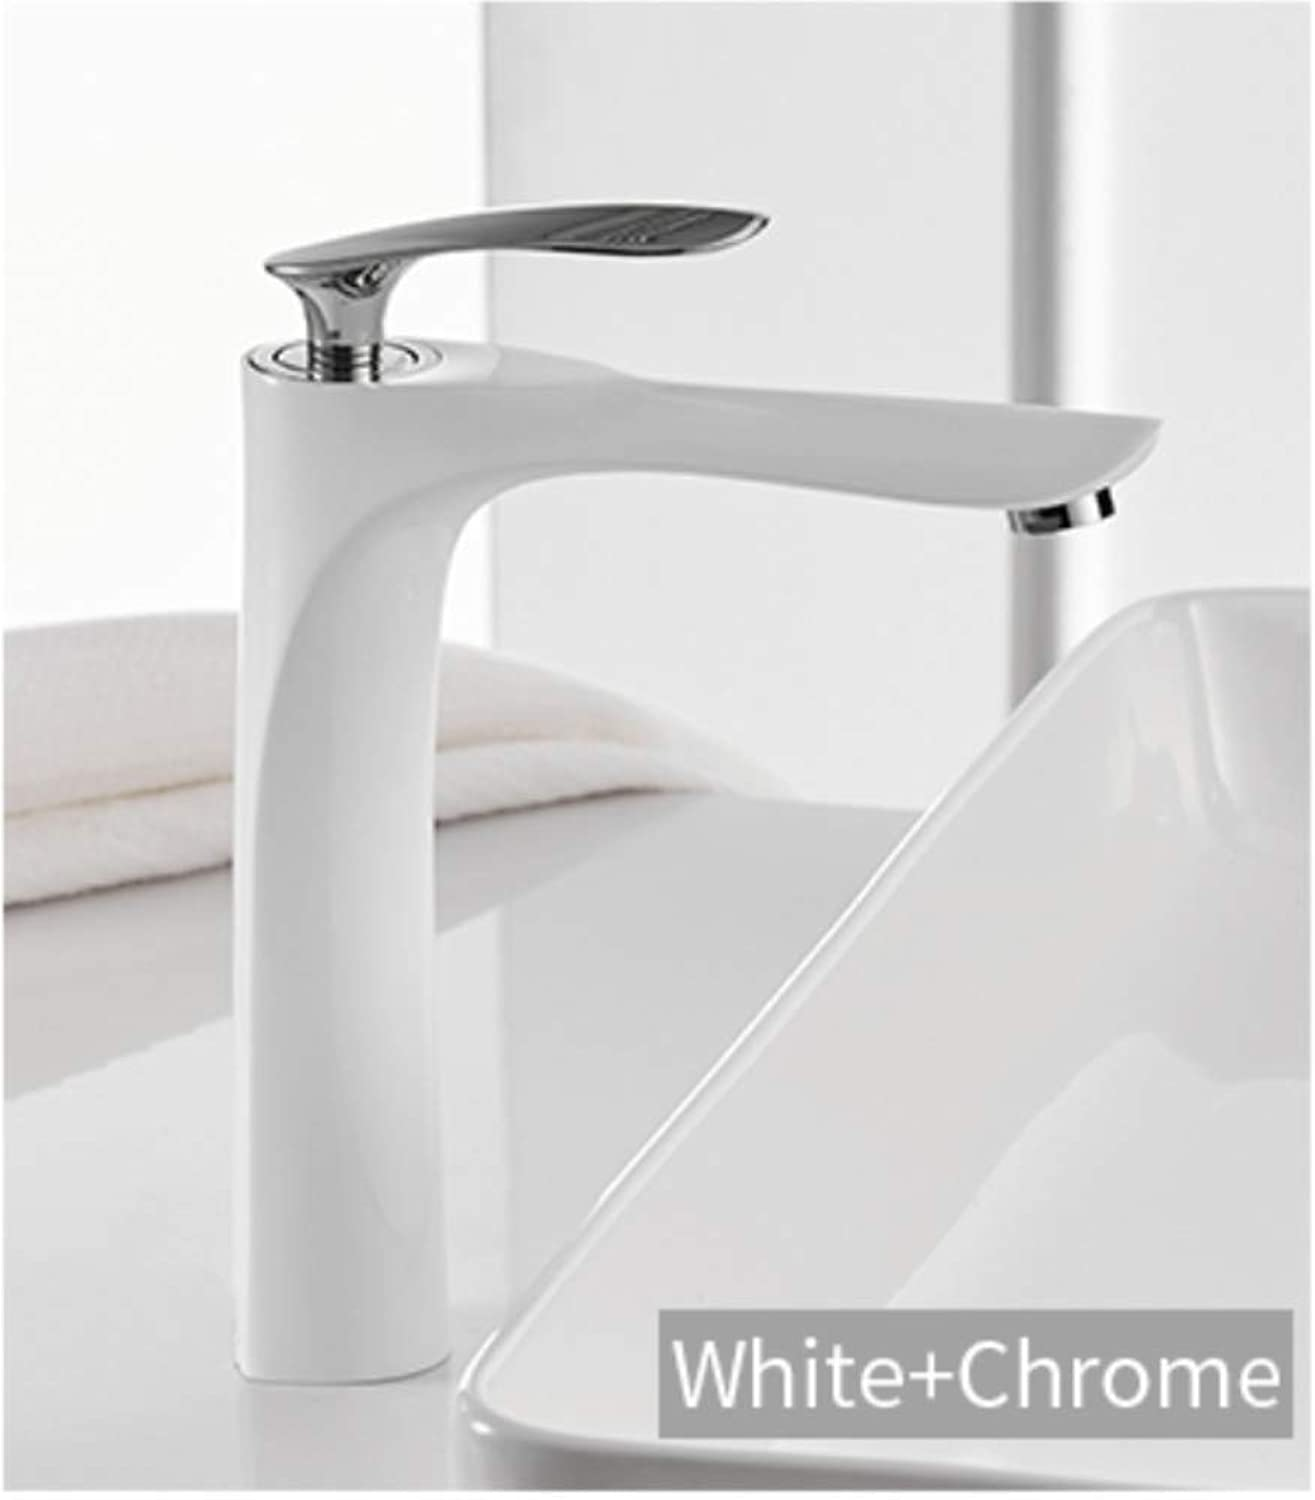 Faucet Bathroom Basin Faucets White color Basin Mixer Tap Bathroom Faucet Hot and Cold Chrome Finish Brass Toilet Sink Water Crane gold